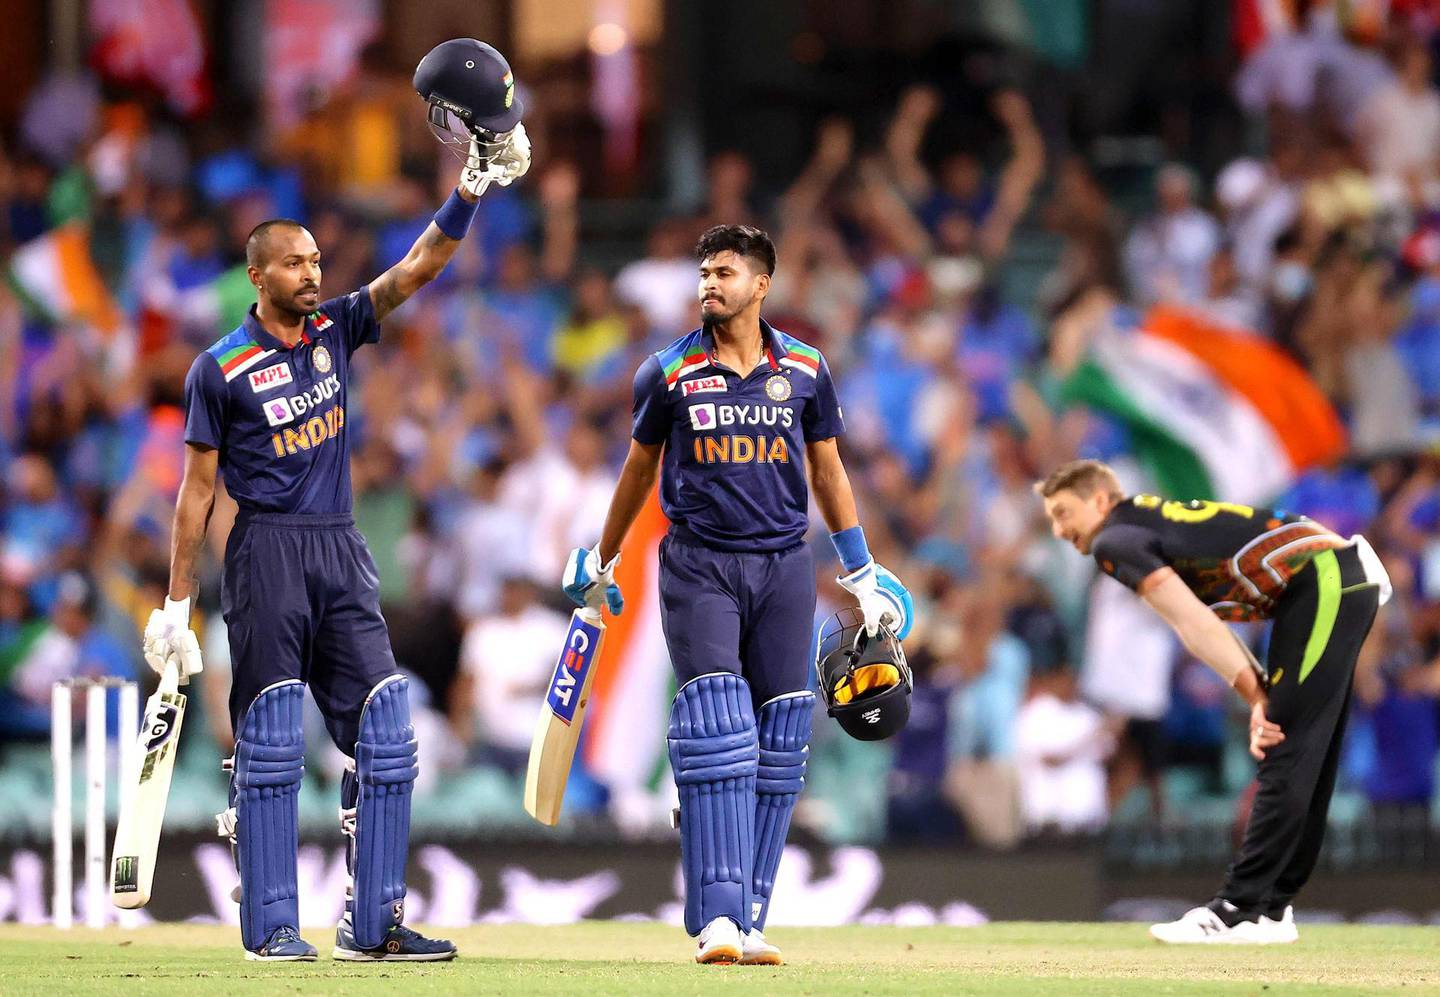 India's Hardik Pandya (L) and teammate Shreyas Iyer celebrate the victory as Australia's Daniel Sams (R) reacts during the second T20 cricket match between Australia and India at the Sydney Cricket Ground in Sydney on December 6, 2020.  / IMAGE RESTRICTED TO EDITORIAL USE - STRICTLY NO COMMERCIAL USE  / AFP / DAVID GRAY / / IMAGE RESTRICTED TO EDITORIAL USE - STRICTLY NO COMMERCIAL USE